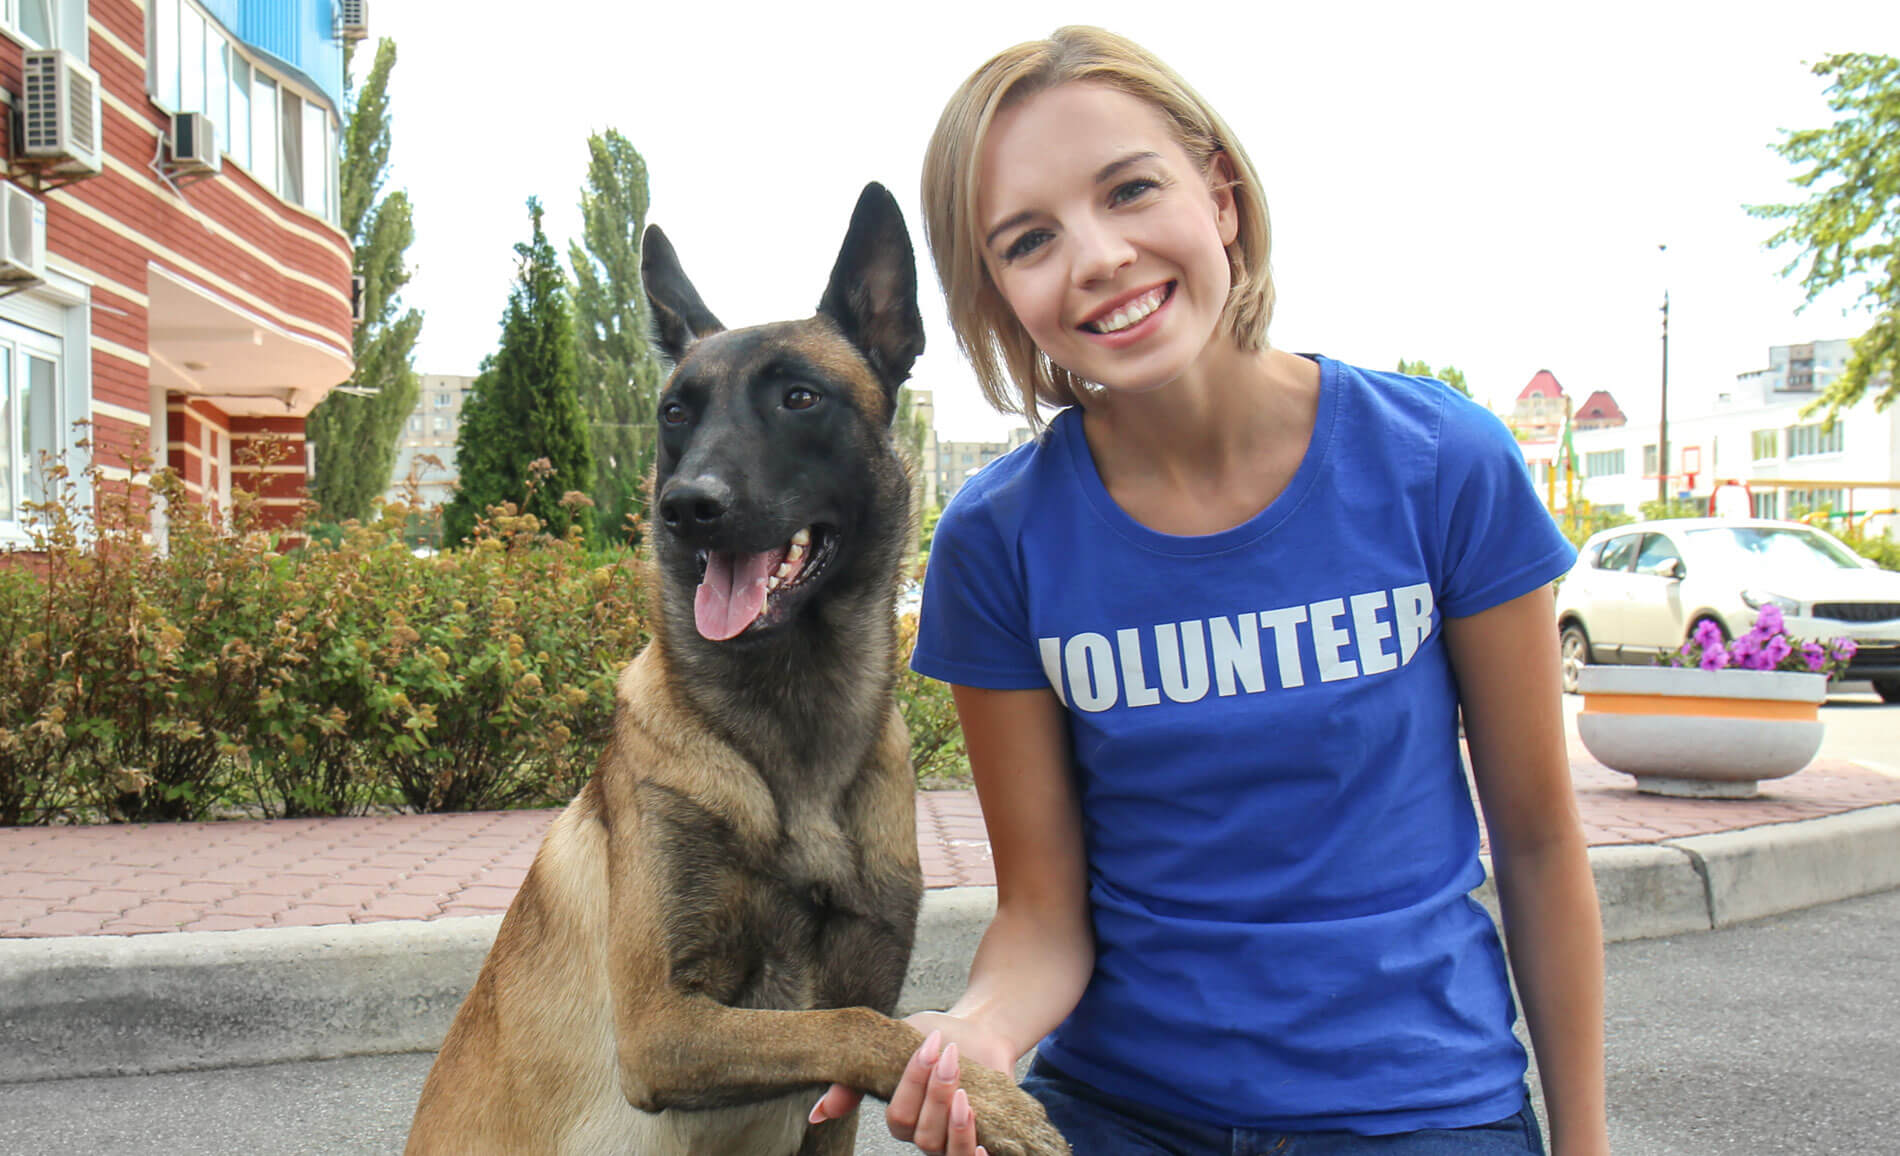 Charity Work with Animals